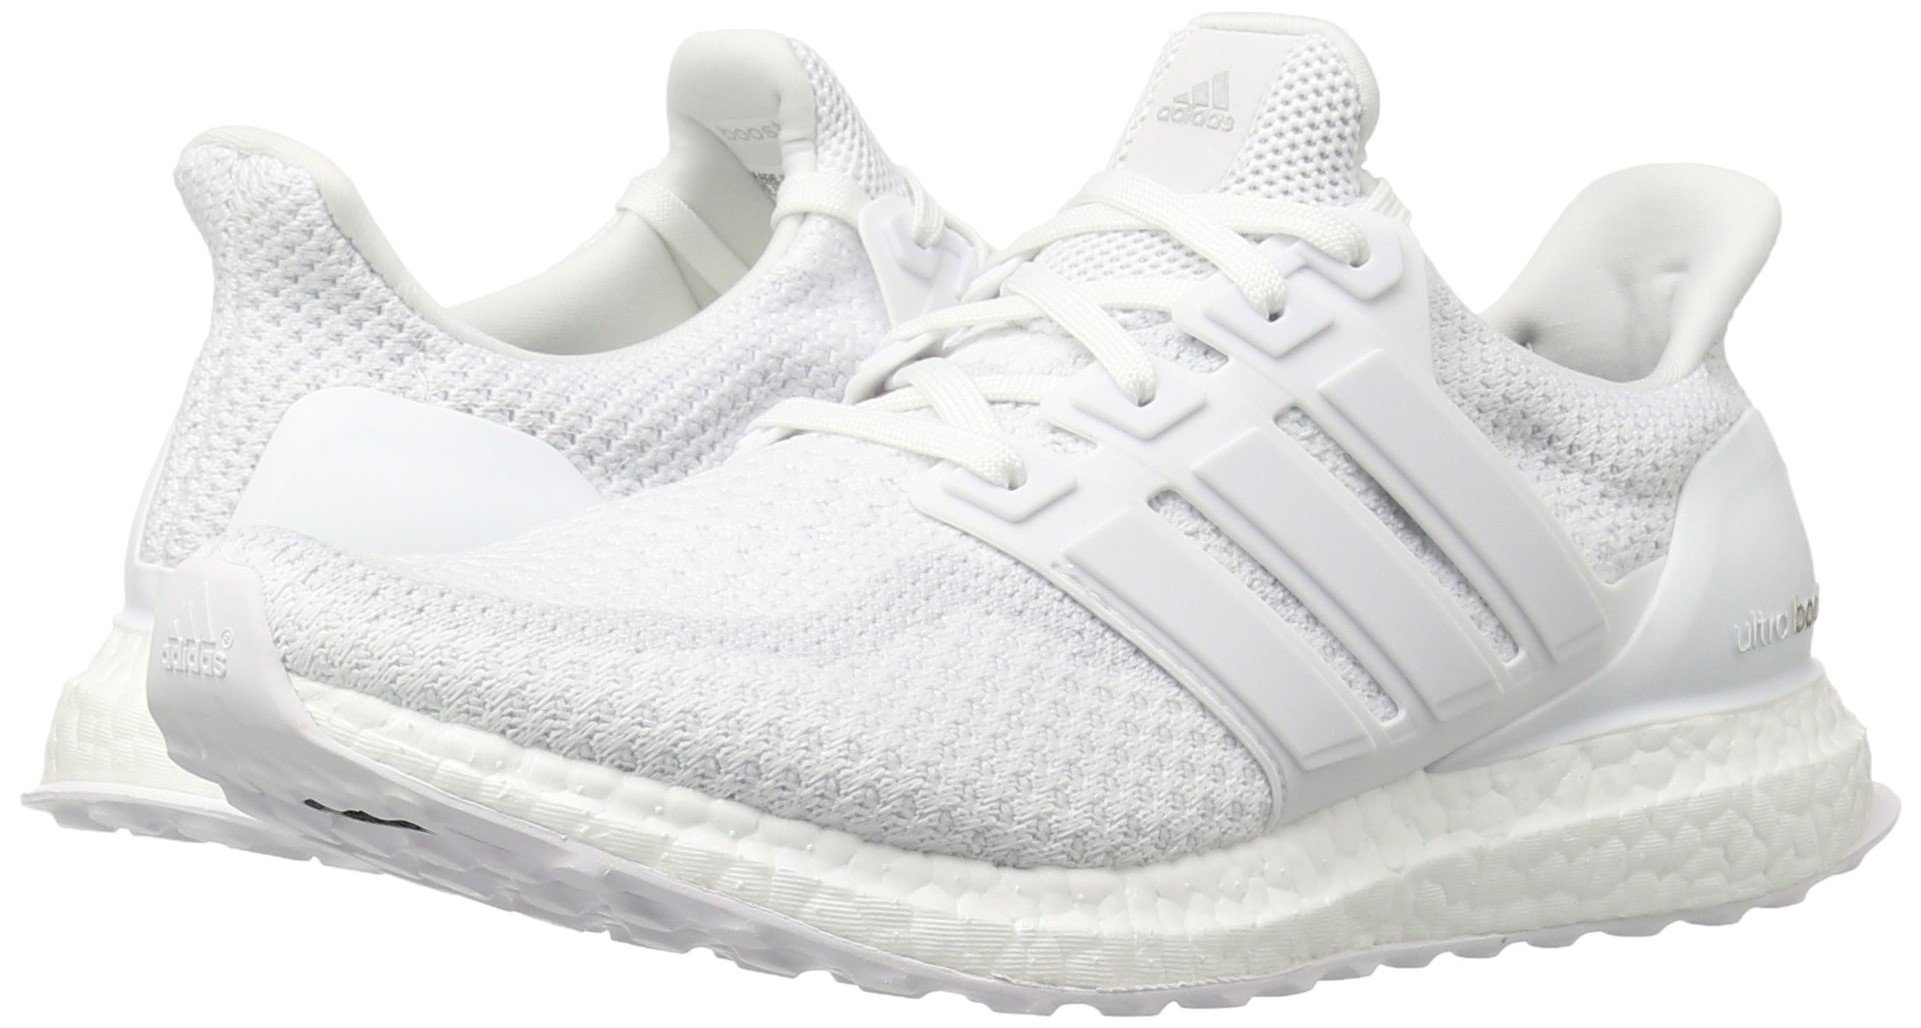 719qnsKKbqL - adidas Ultra Boost M, Men's Competition Running Shoes Multicolour Size: 8 UK M Crystal White